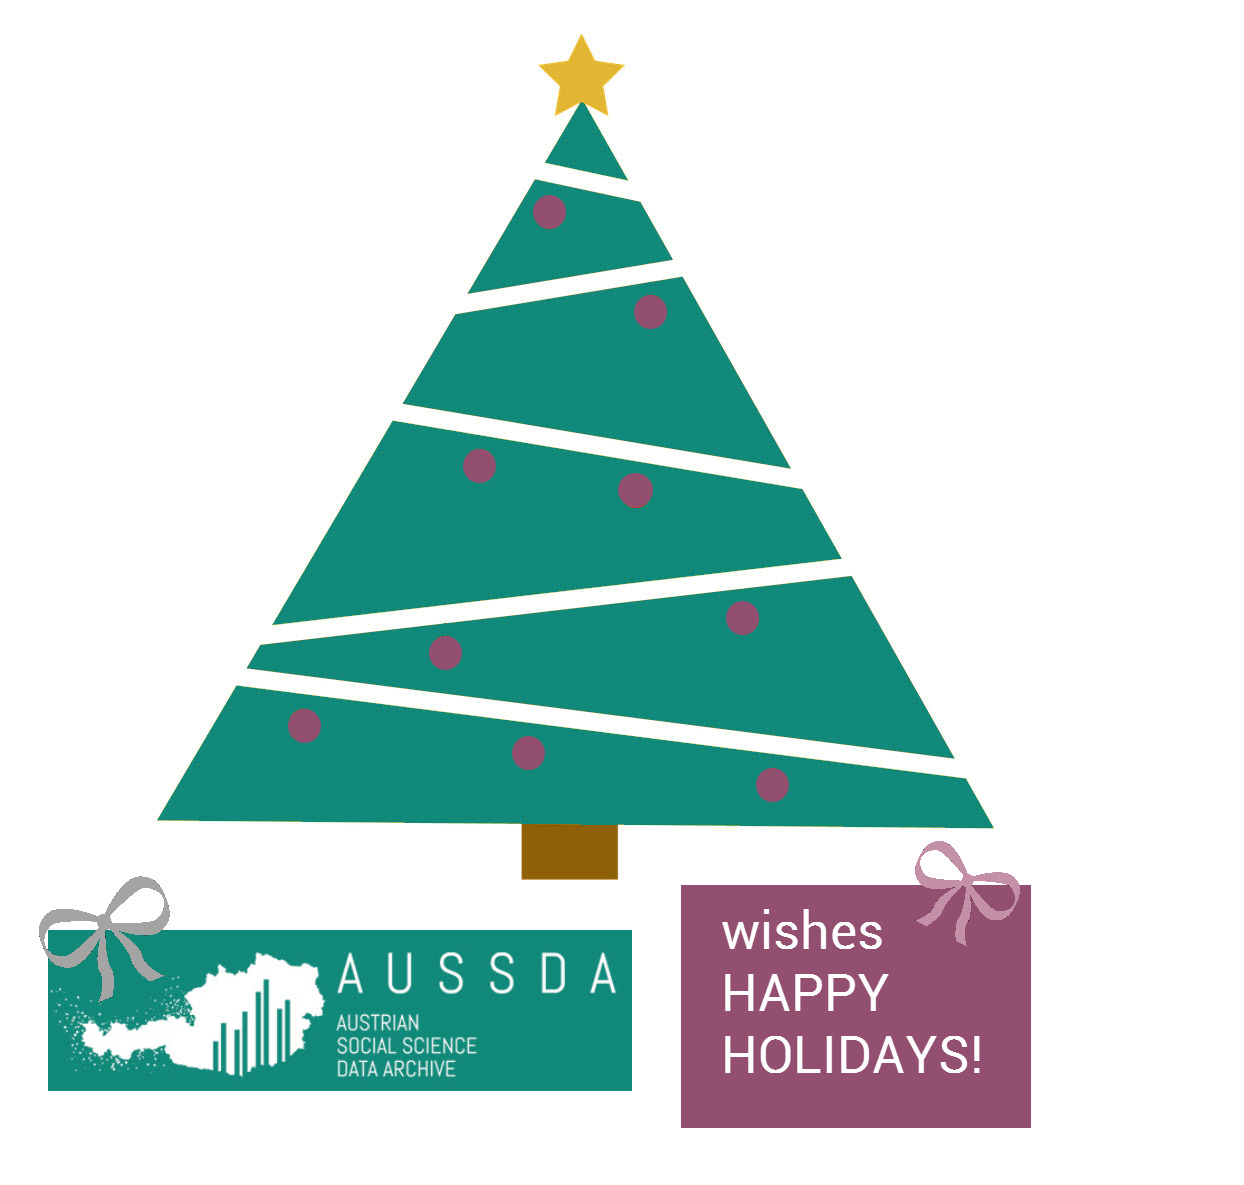 Christmas greetings from AUSSDA